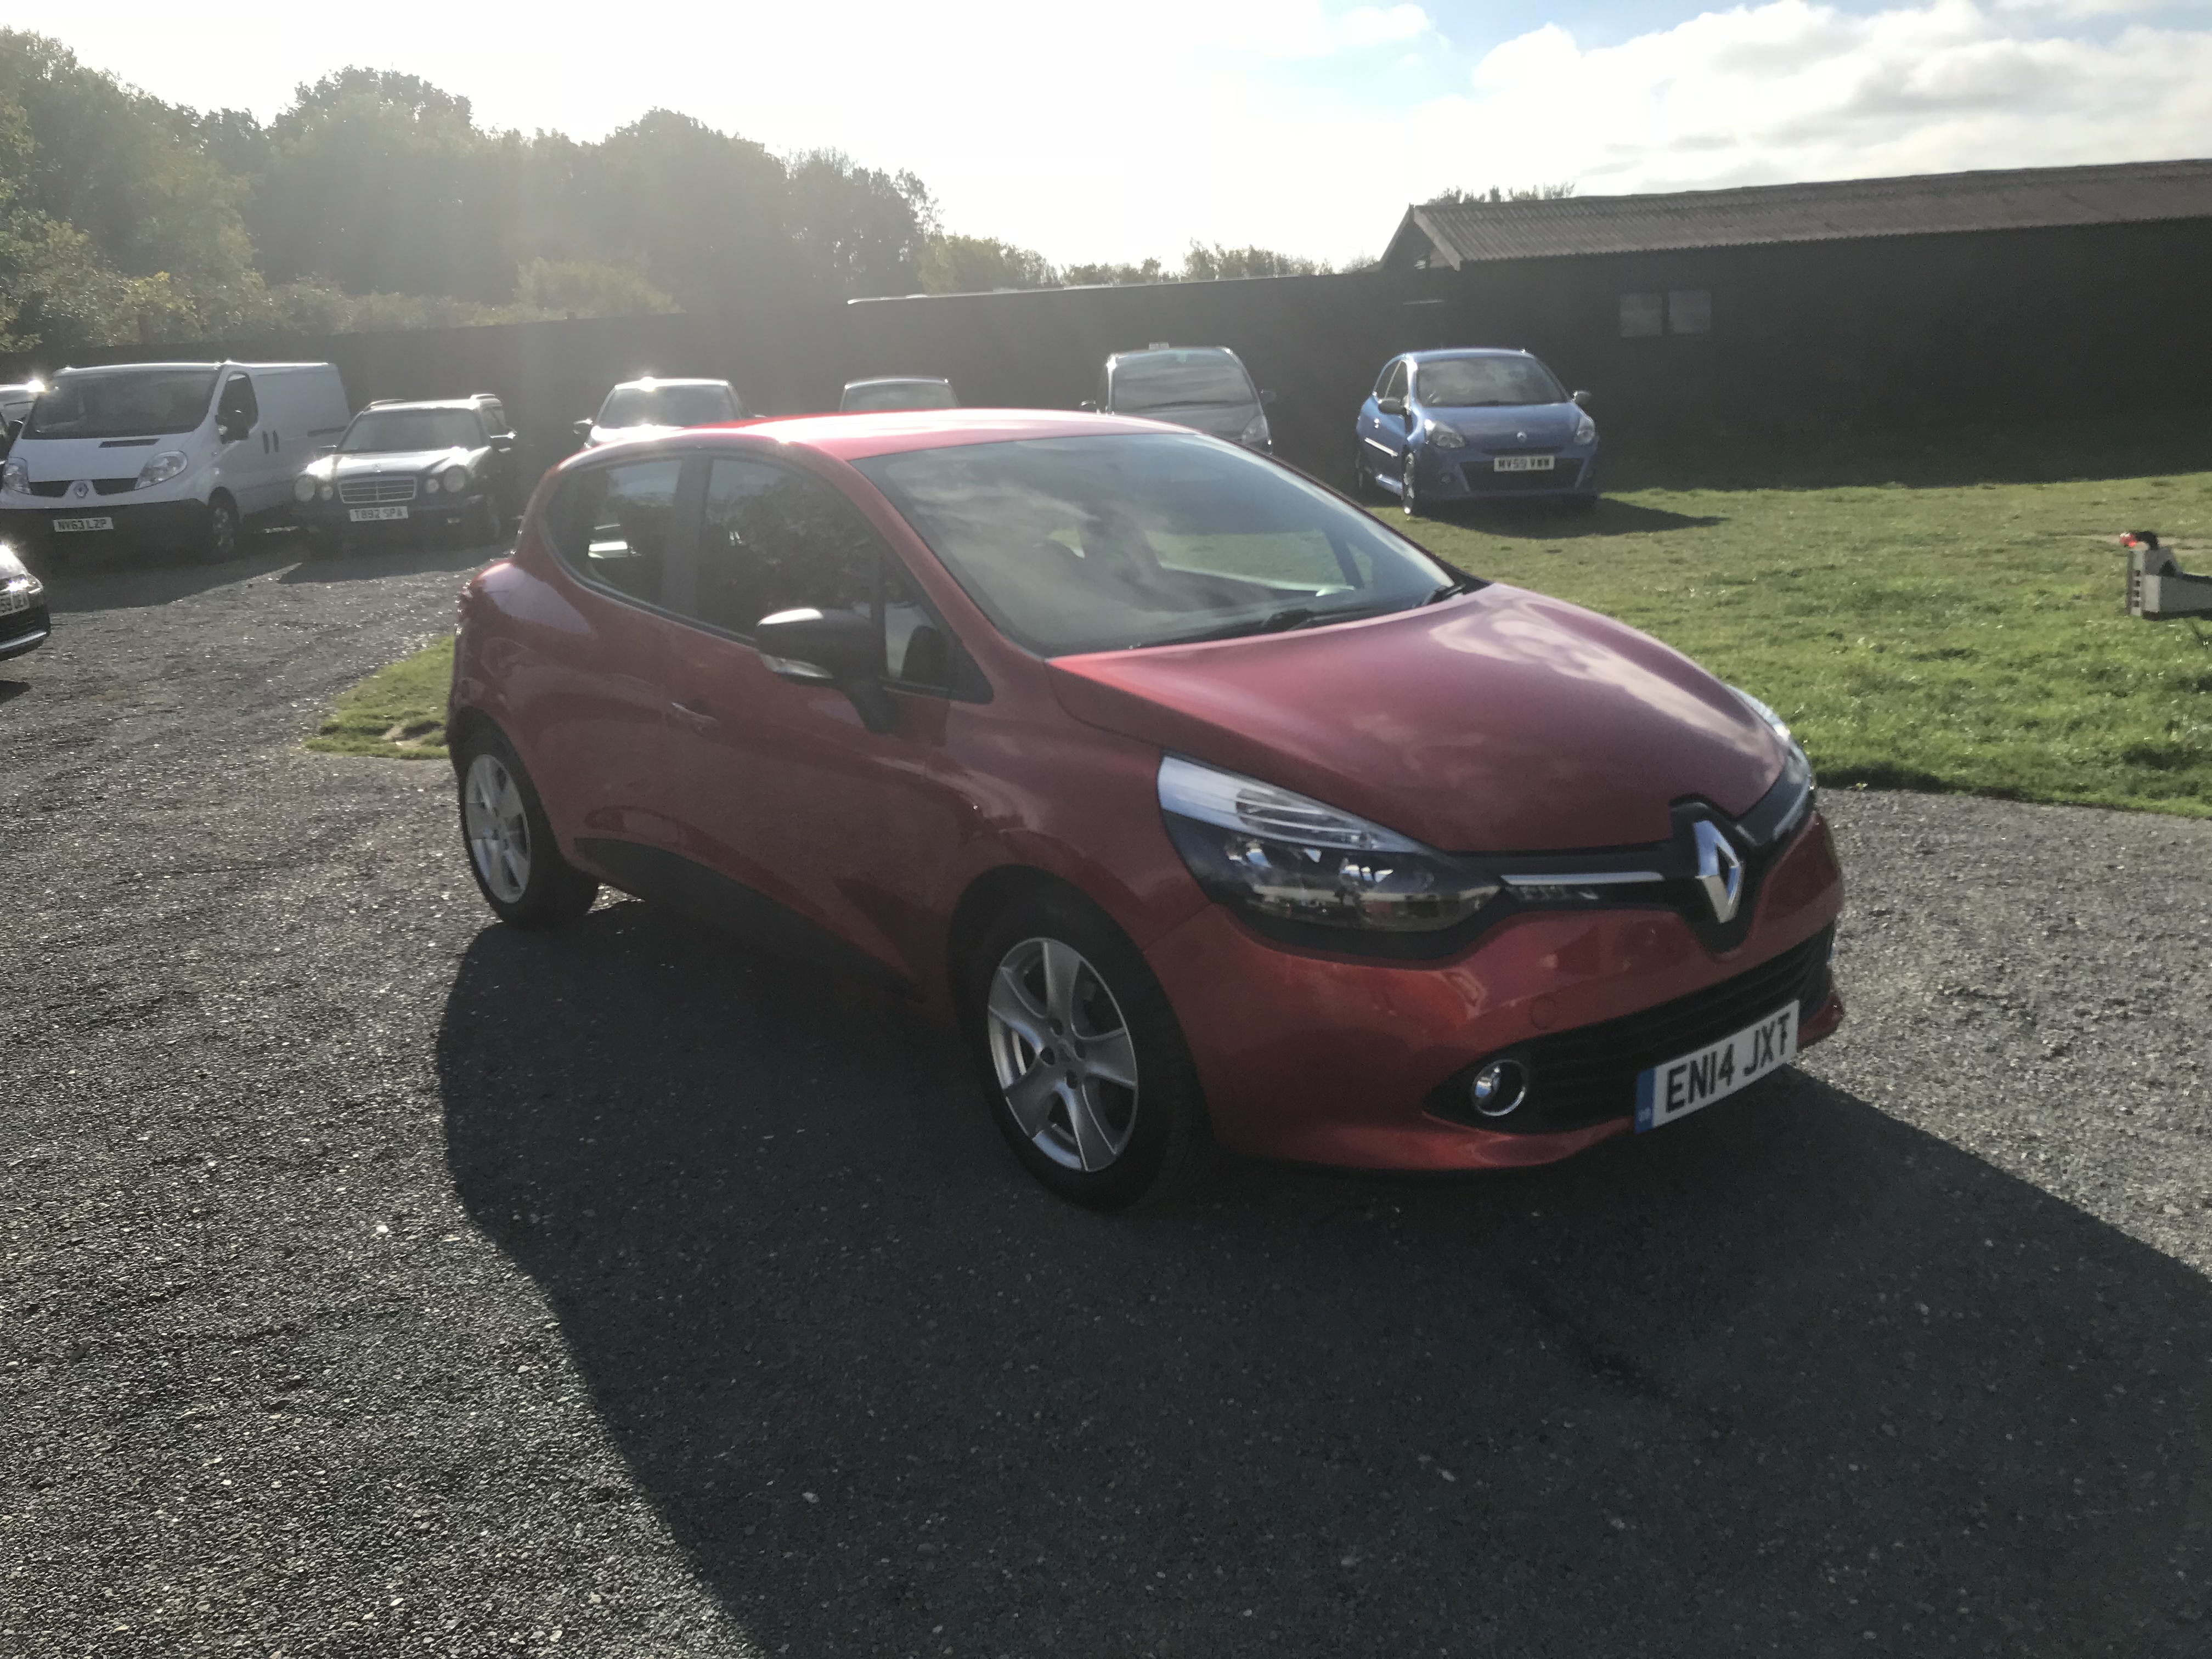 Renault Clio 1.2 Expressions + (14 Reg) – Sold